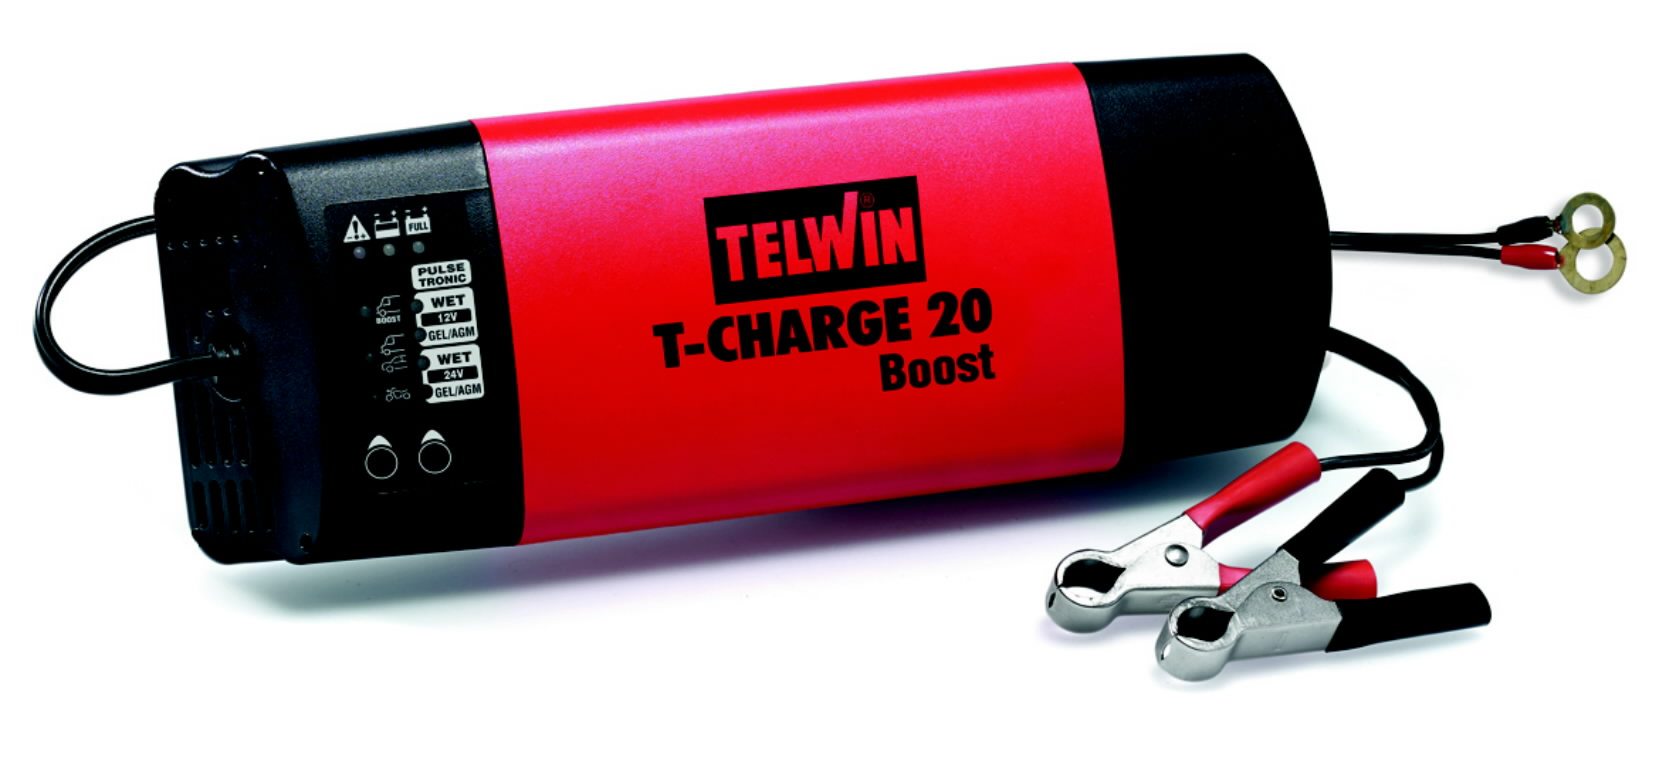 T-CHARGE 20